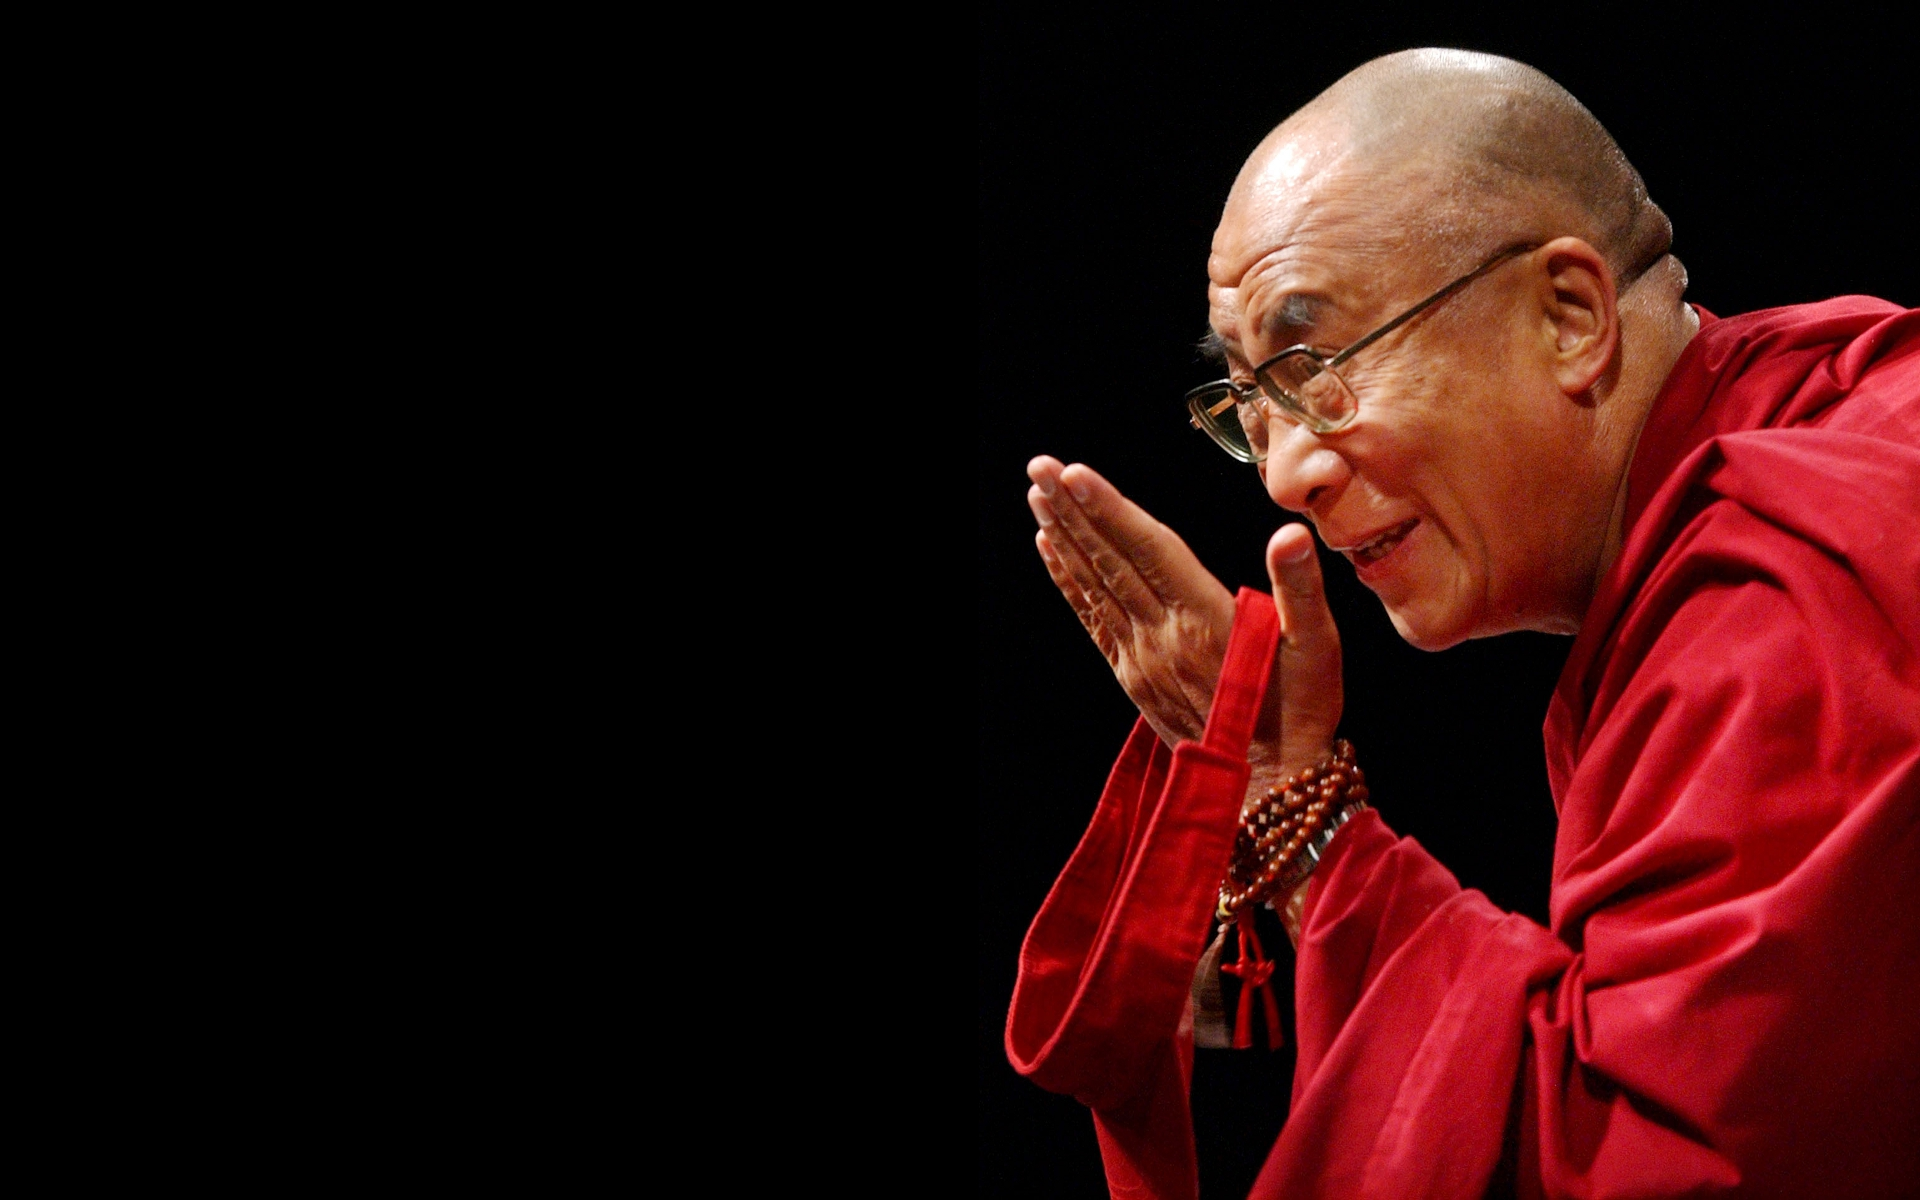 why is the dalai lama living Welcome to the official twitter page of the office of his holiness the 14th dalai lama dharamsala  expecting nothing in return is critical to living a life of.